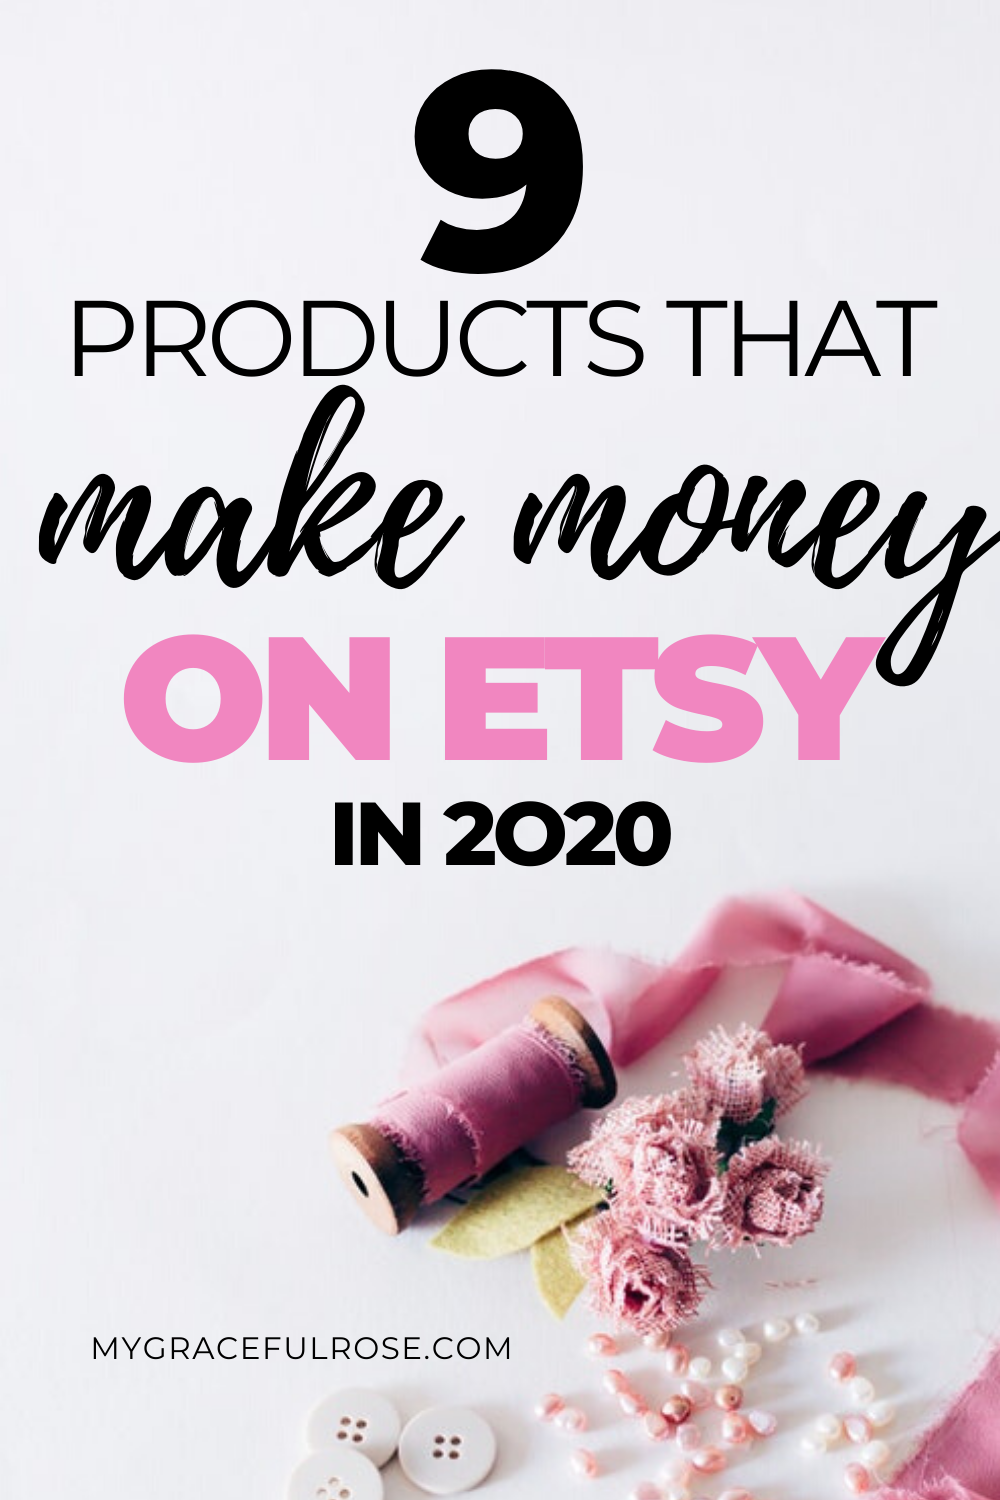 9 Products That Make Money On Etsy In 2020 In 2020 Things To Sell Etsy Selling On Etsy